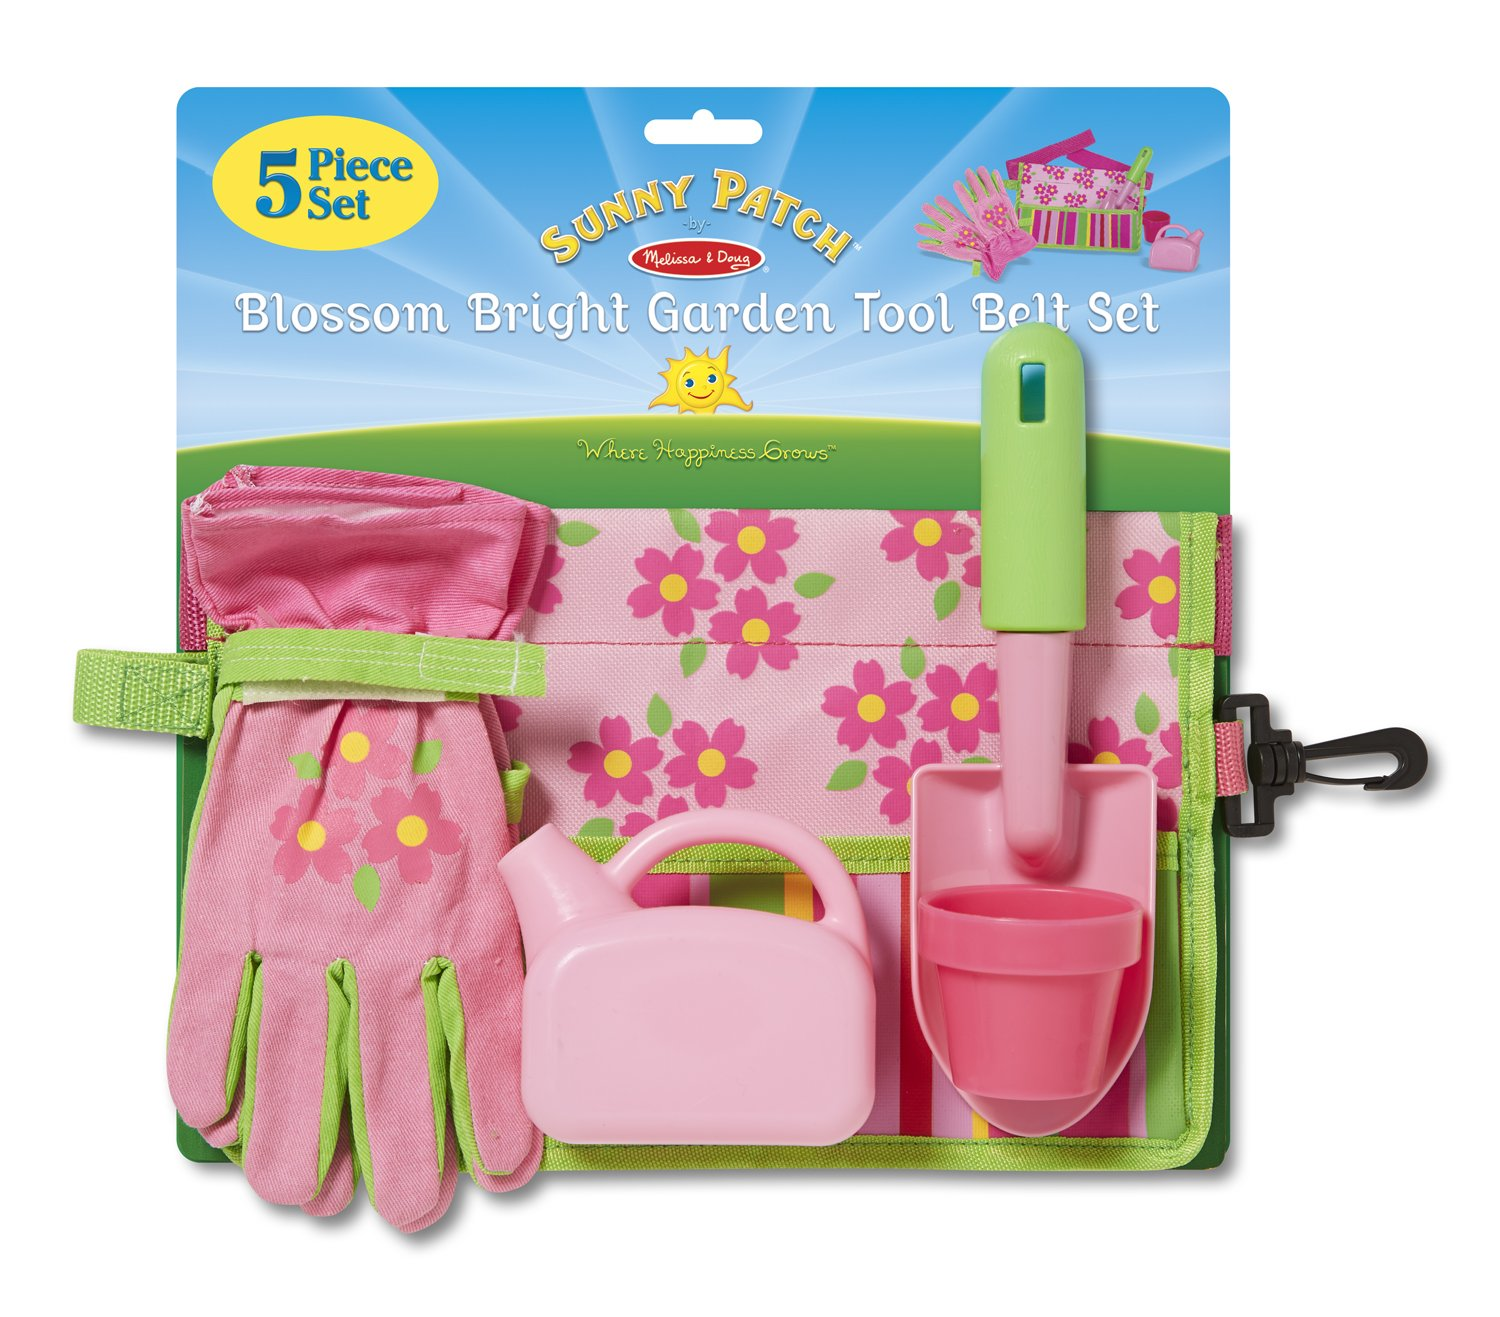 Amazon.com: Melissa U0026 Doug Sunny Patch Blossom Bright Garden Tool Belt Set  With Gloves, Trowel, Watering Can, And Pot: Melissa U0026 Doug: Toys U0026 Games